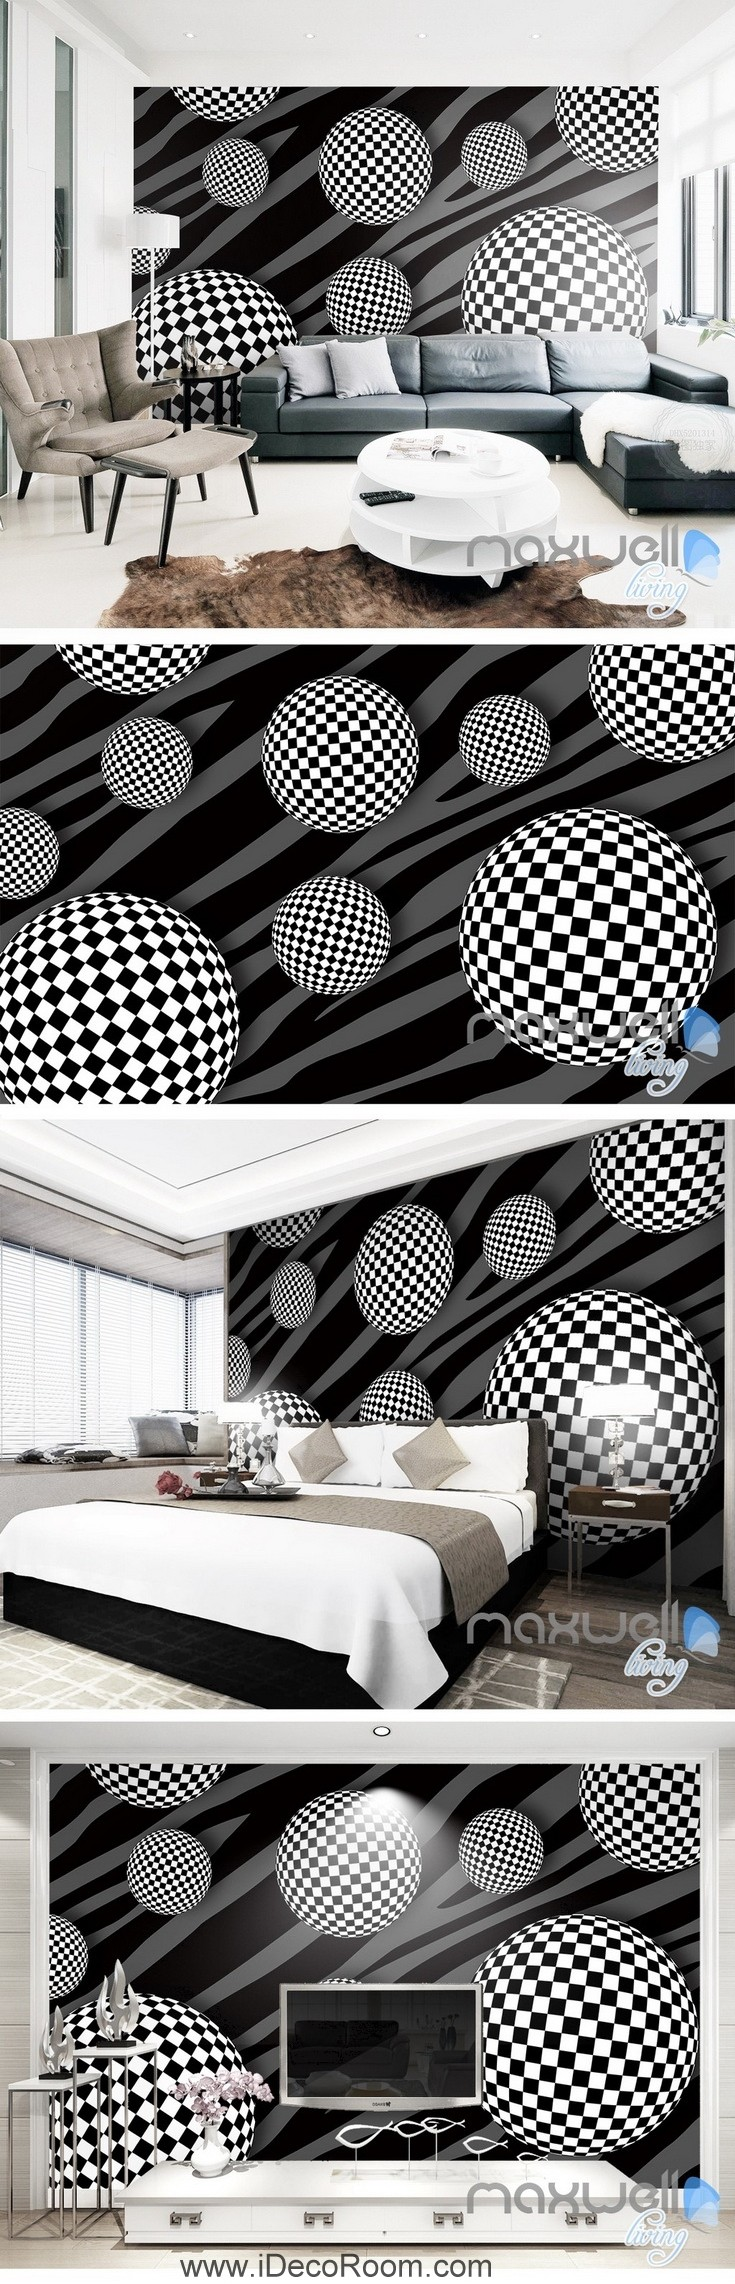 Best 3D Pattern Sphere 5D Wall Paper Mural Art Print Decals 400 x 300